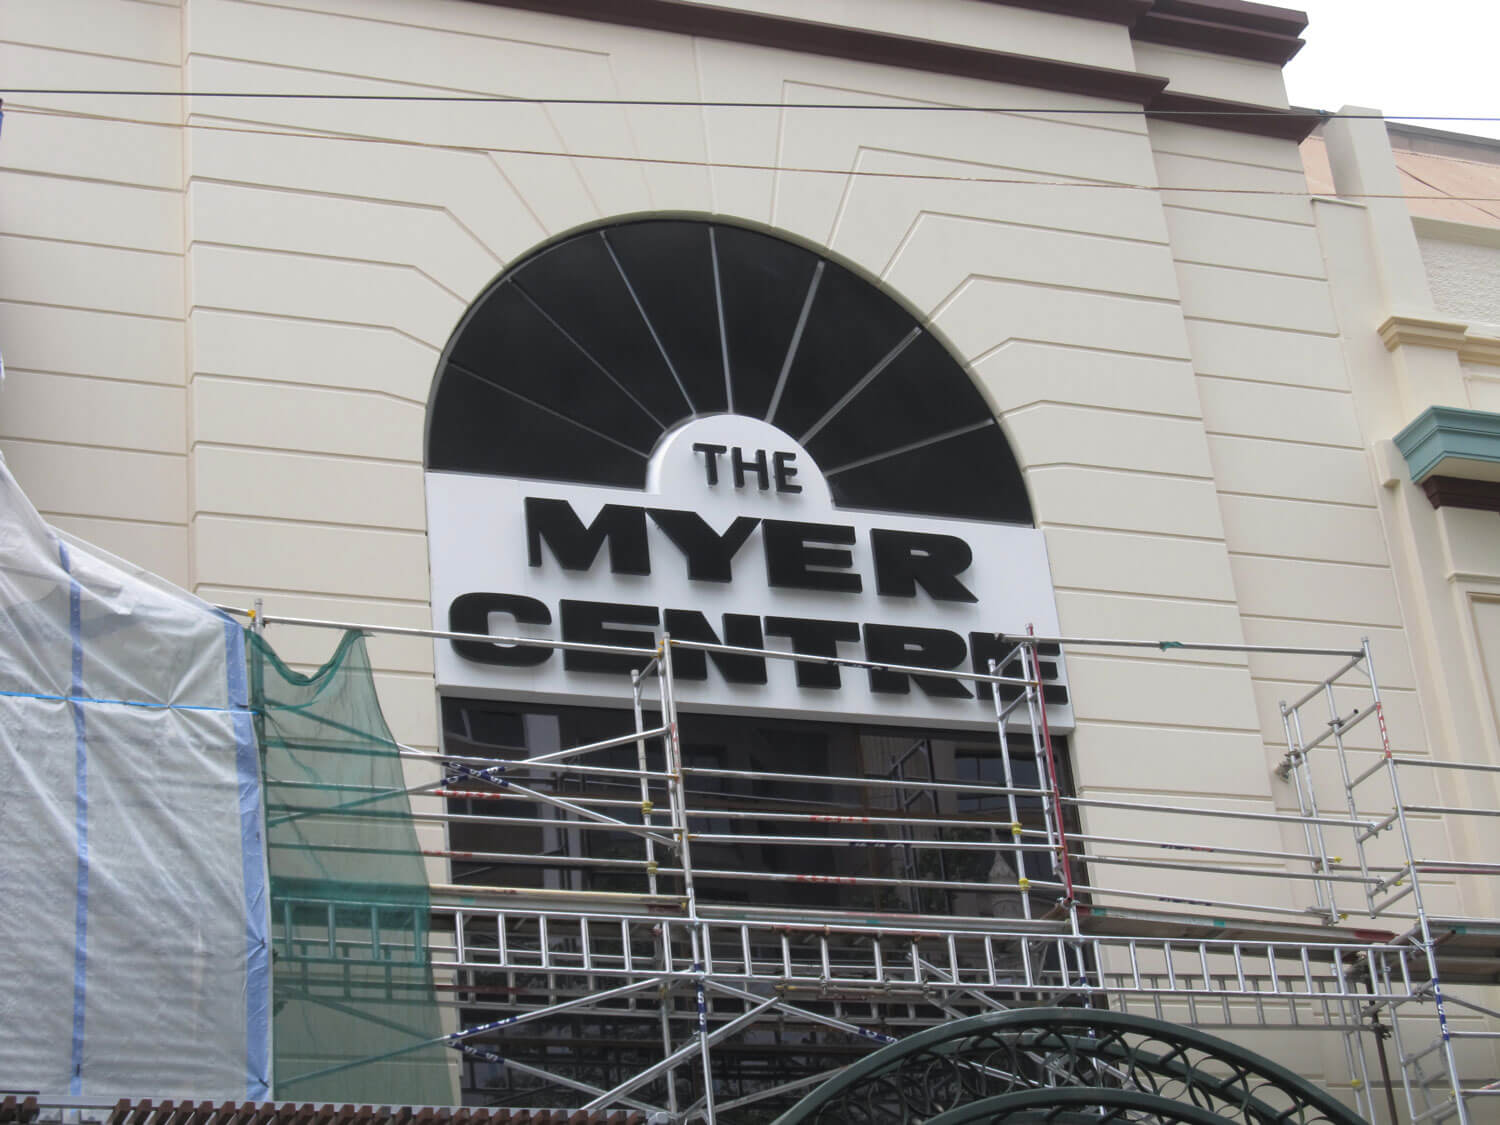 Scaffolding For Repair Works At Myer Centre - Building Maintenance - Remedial Building Services